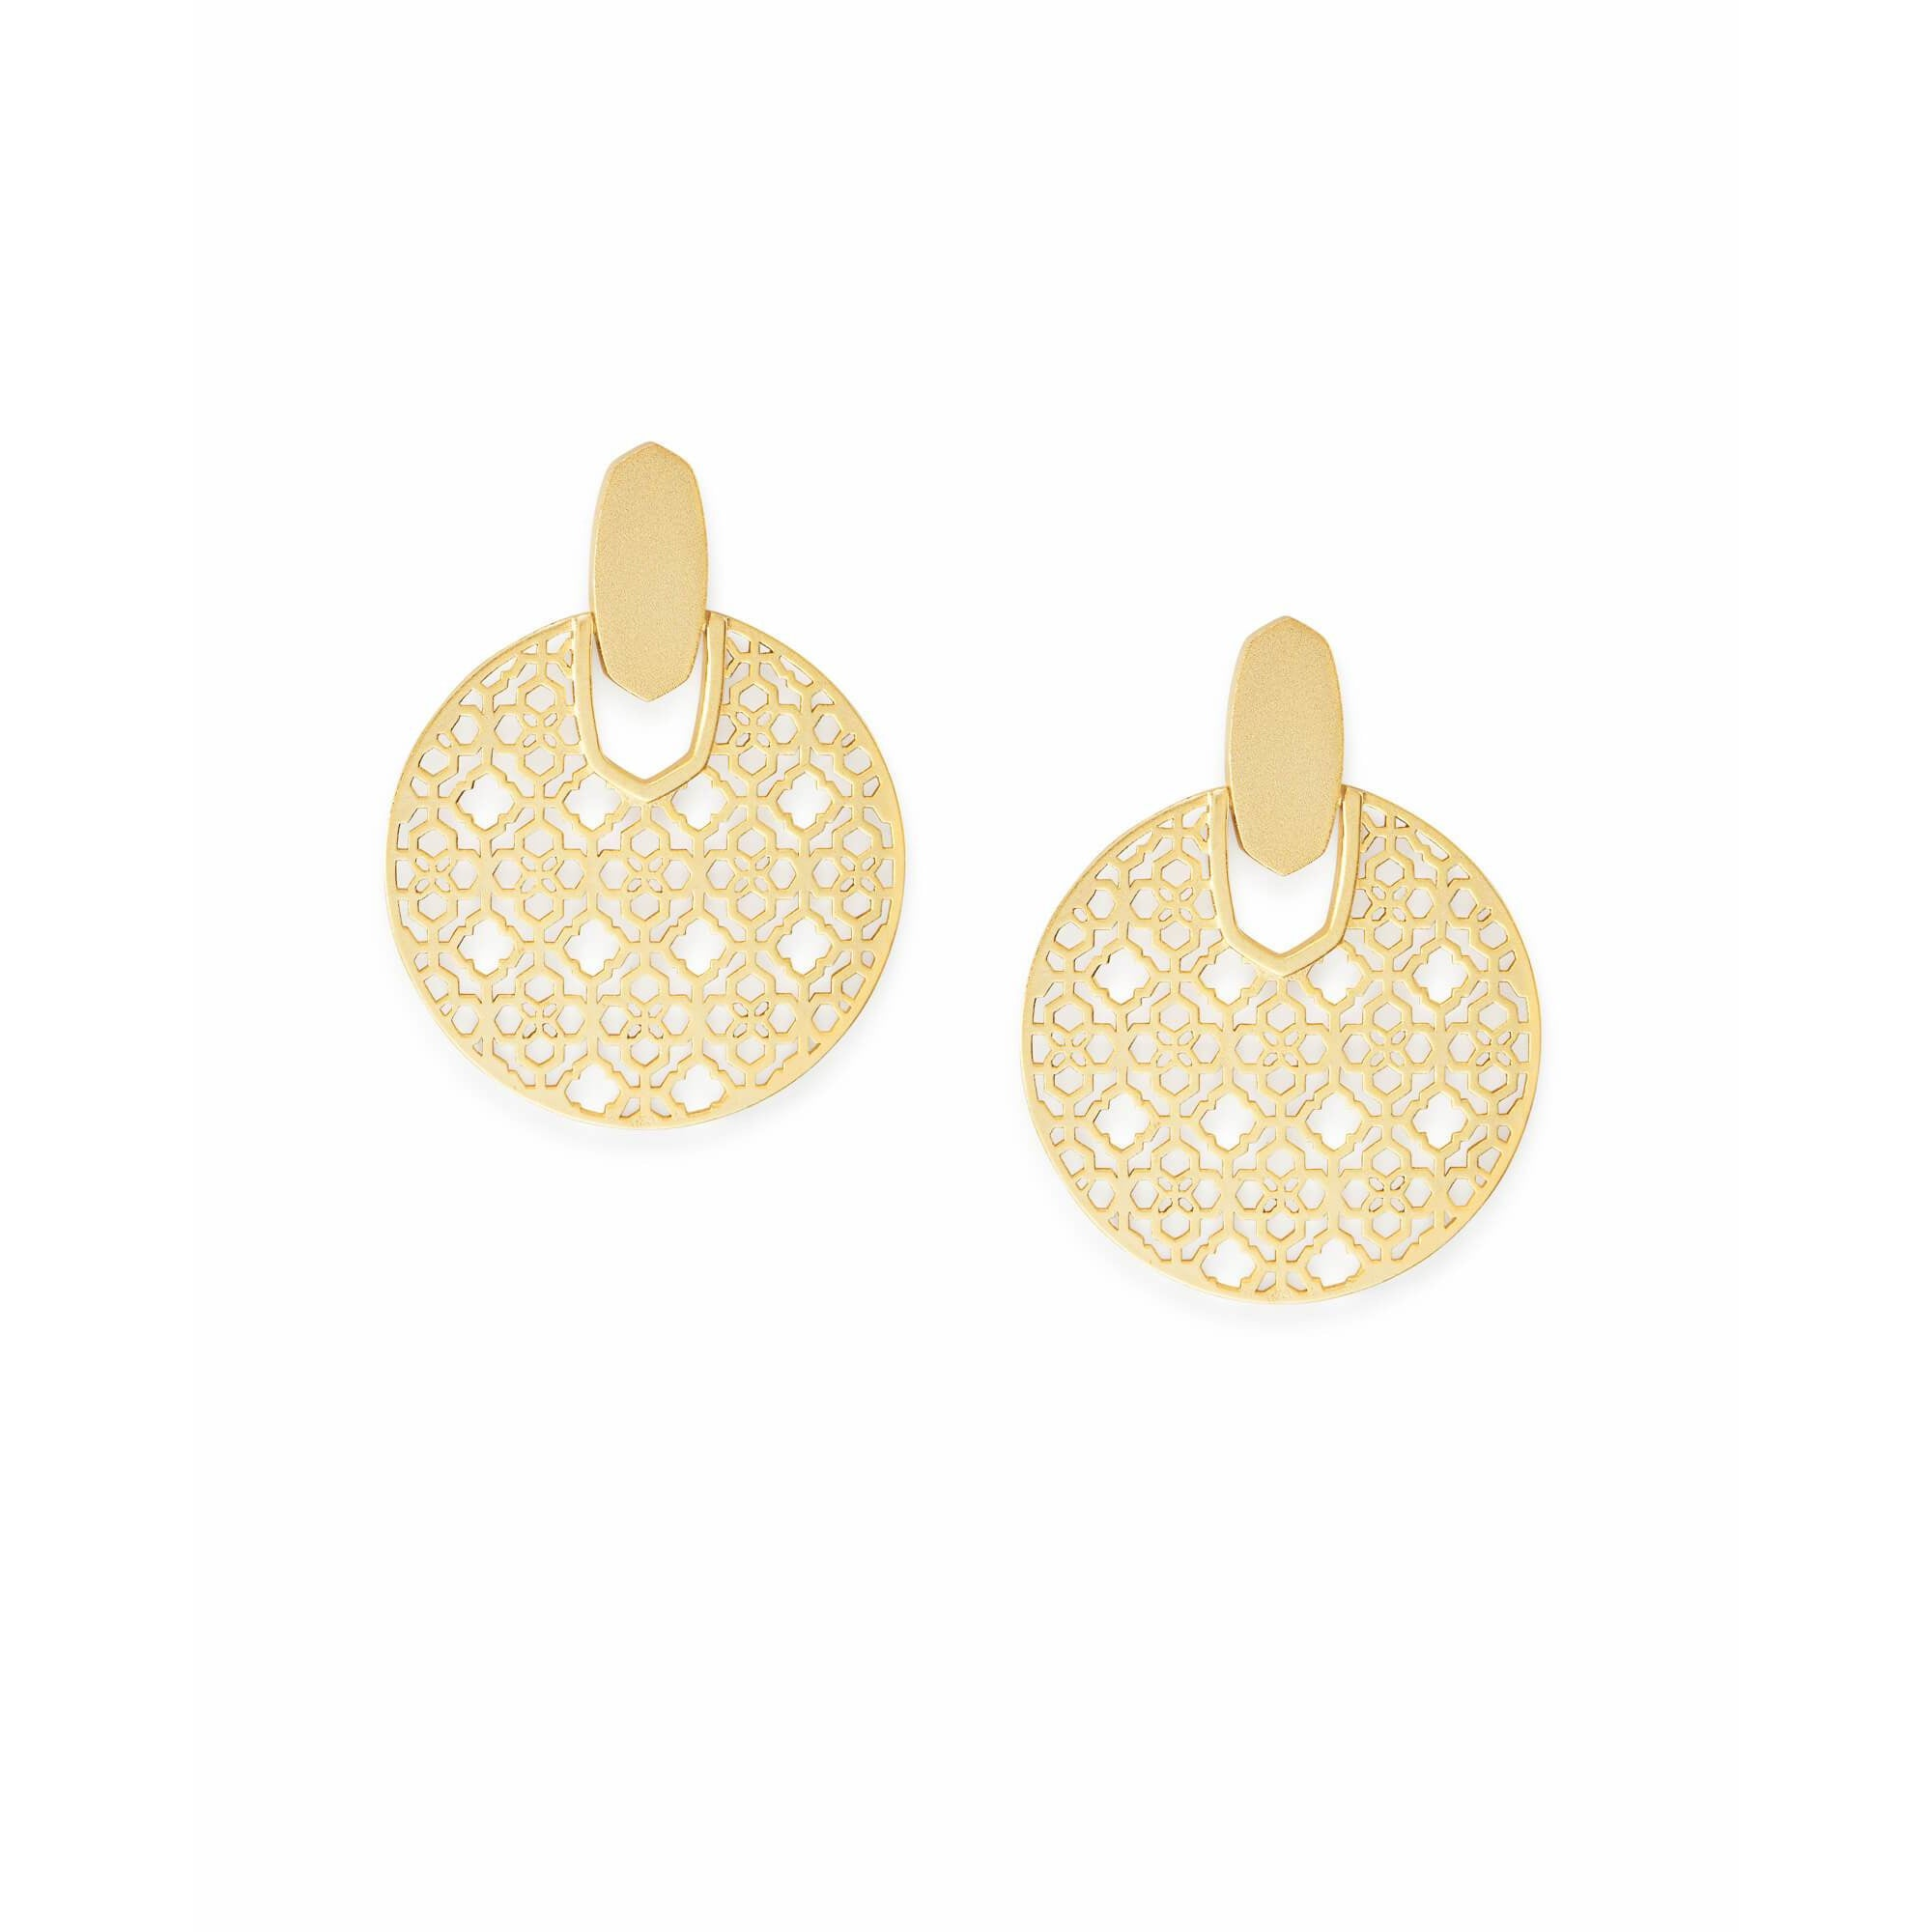 Kendra Scott - Didi Gold Statement Earrings in Gold Filigree, Front View